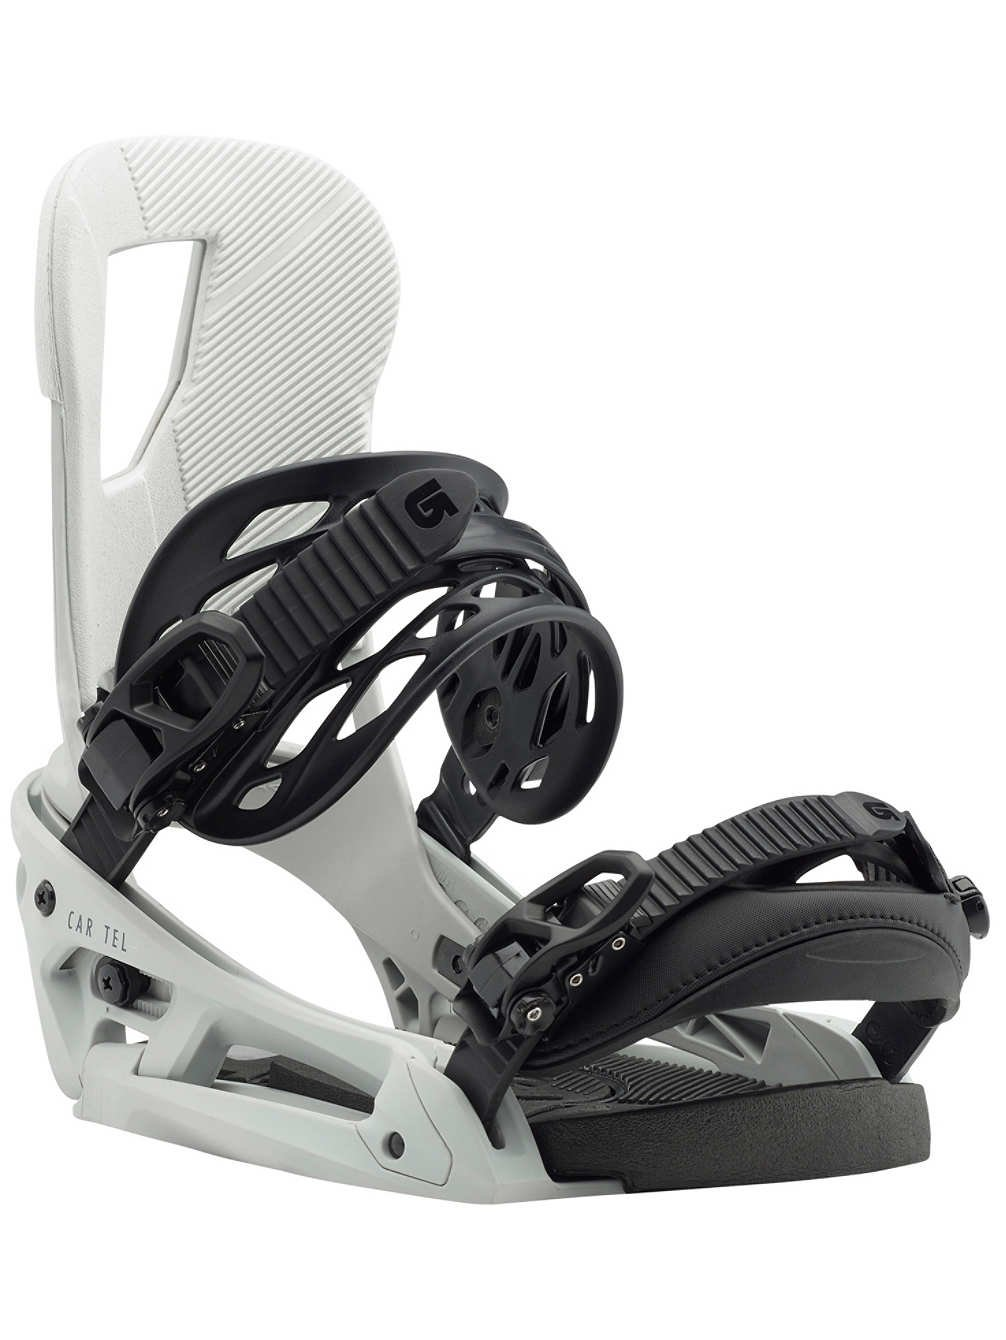 Amazon.com : Burton Cartel EST Snowboard Bindings Primed ...